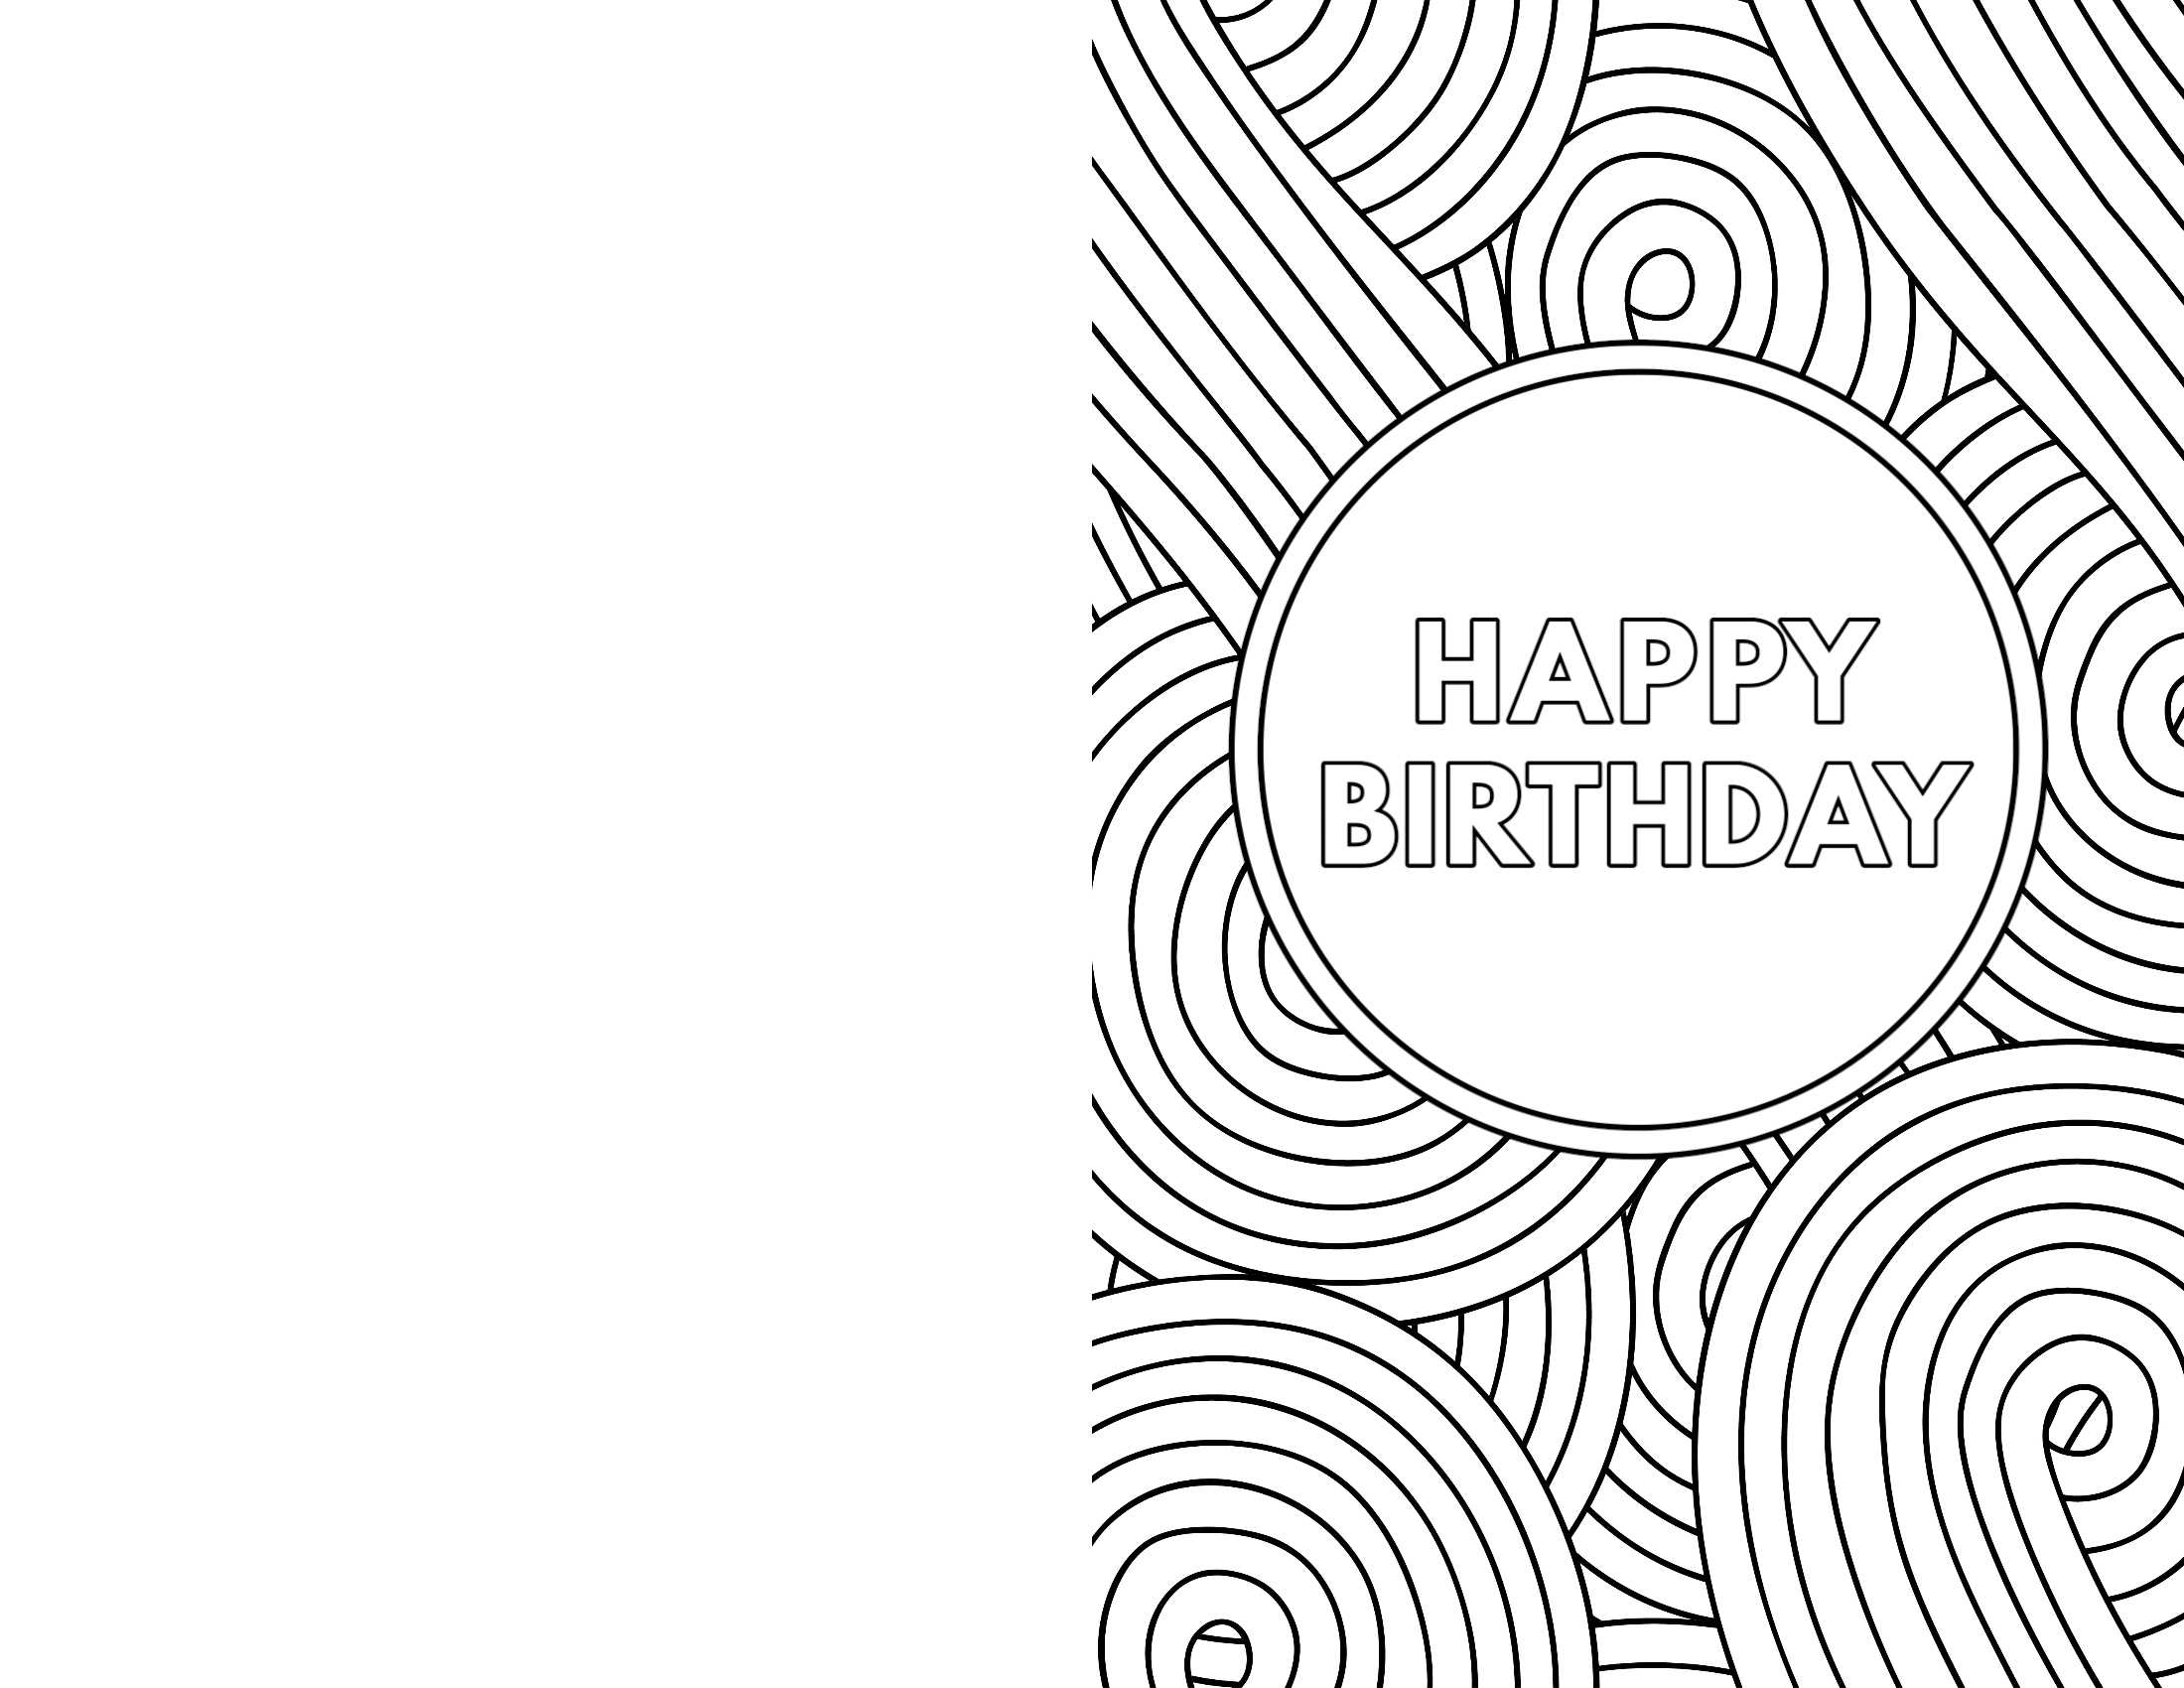 Free Printable Birthday Cards - Paper Trail Design Pertaining To Foldable Birthday Card Template